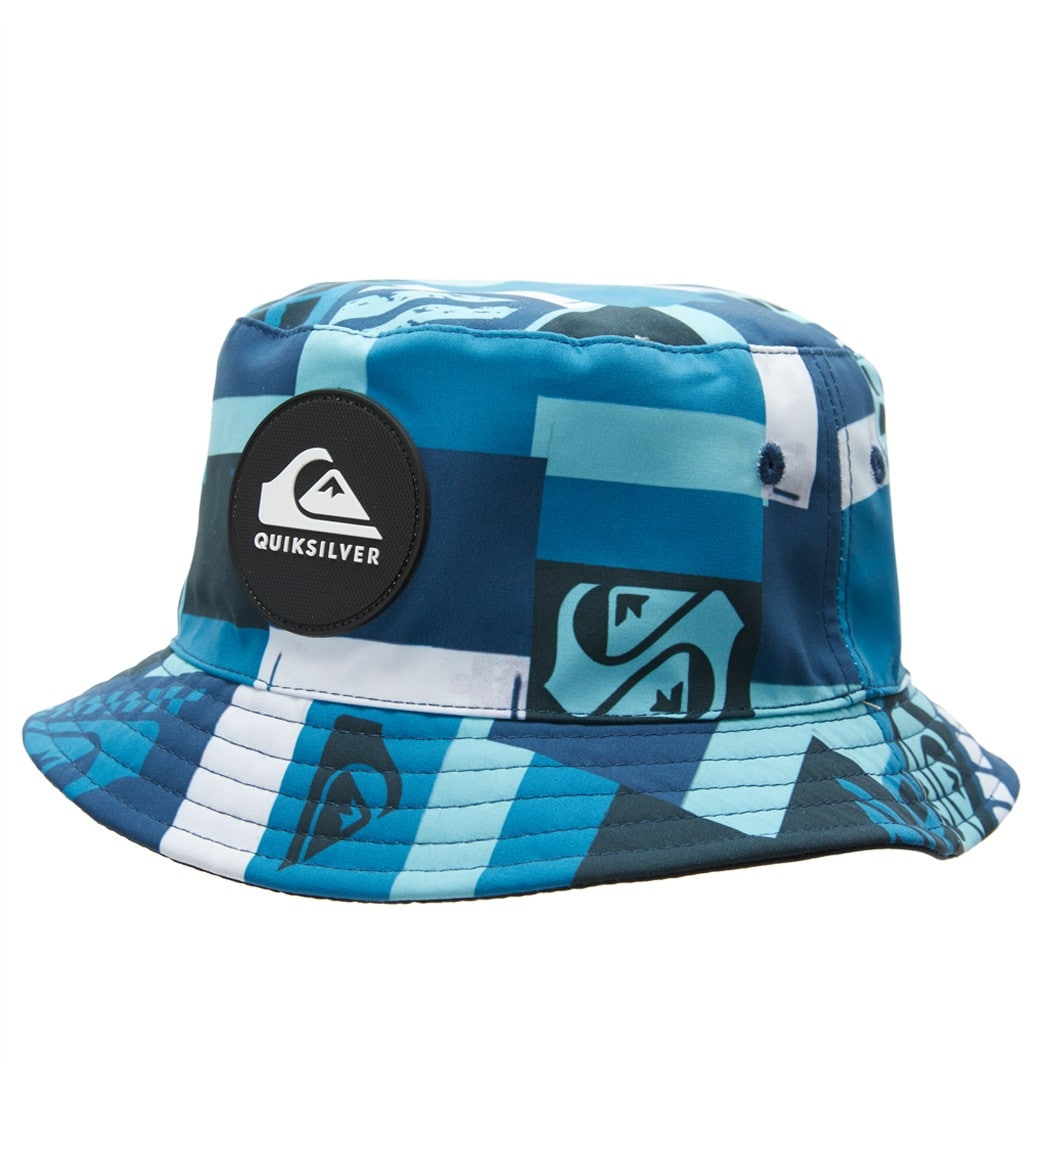 ba61c762d2a7f Quiksilver Boys  Lurkerize Bucket Hat at SwimOutlet.com